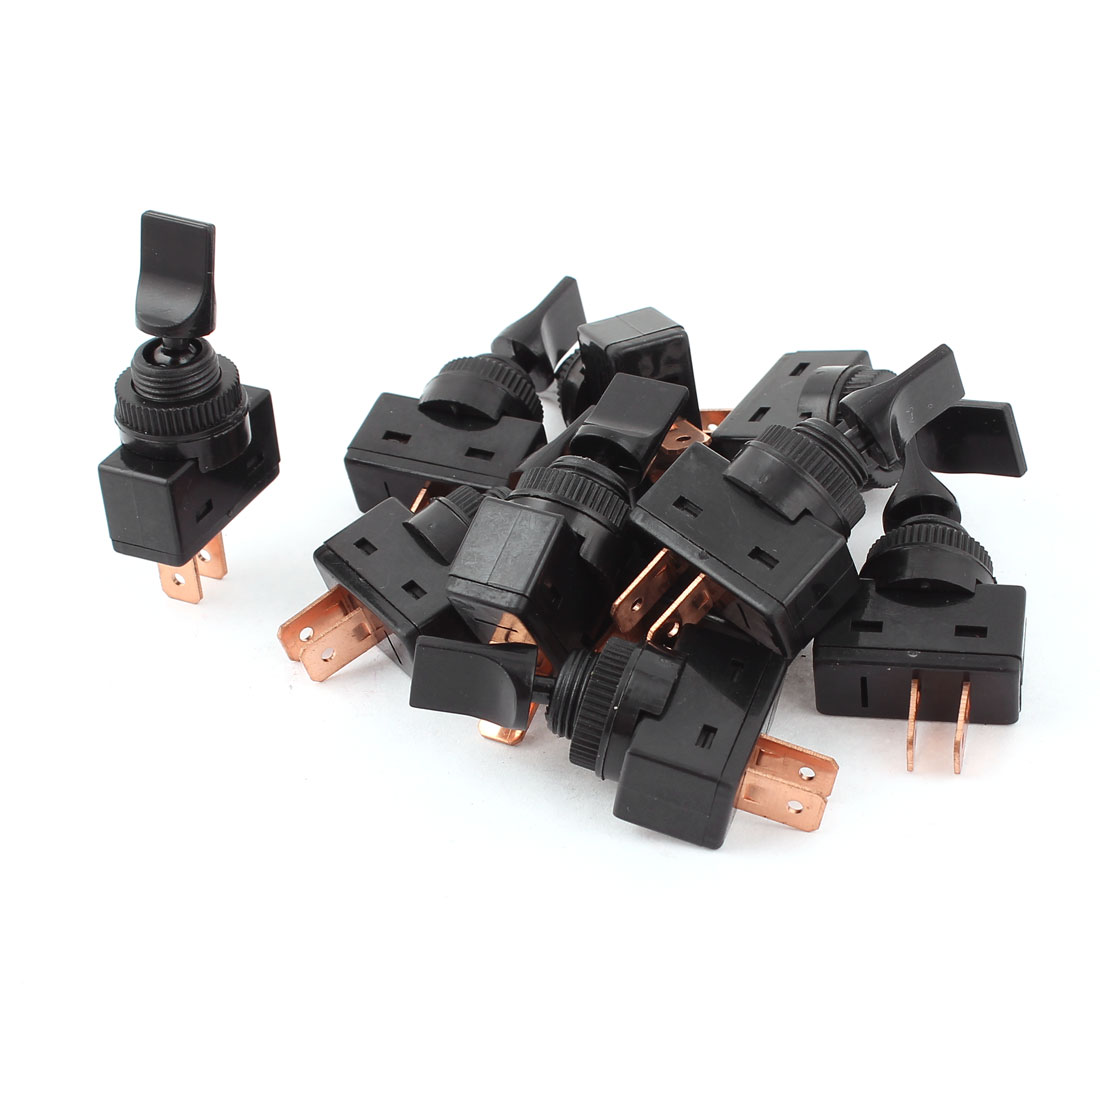 "12VDC 20A Two Position ON/OFF SPST 0.47"" Mount Black Toggle Switch 10 Pcs"